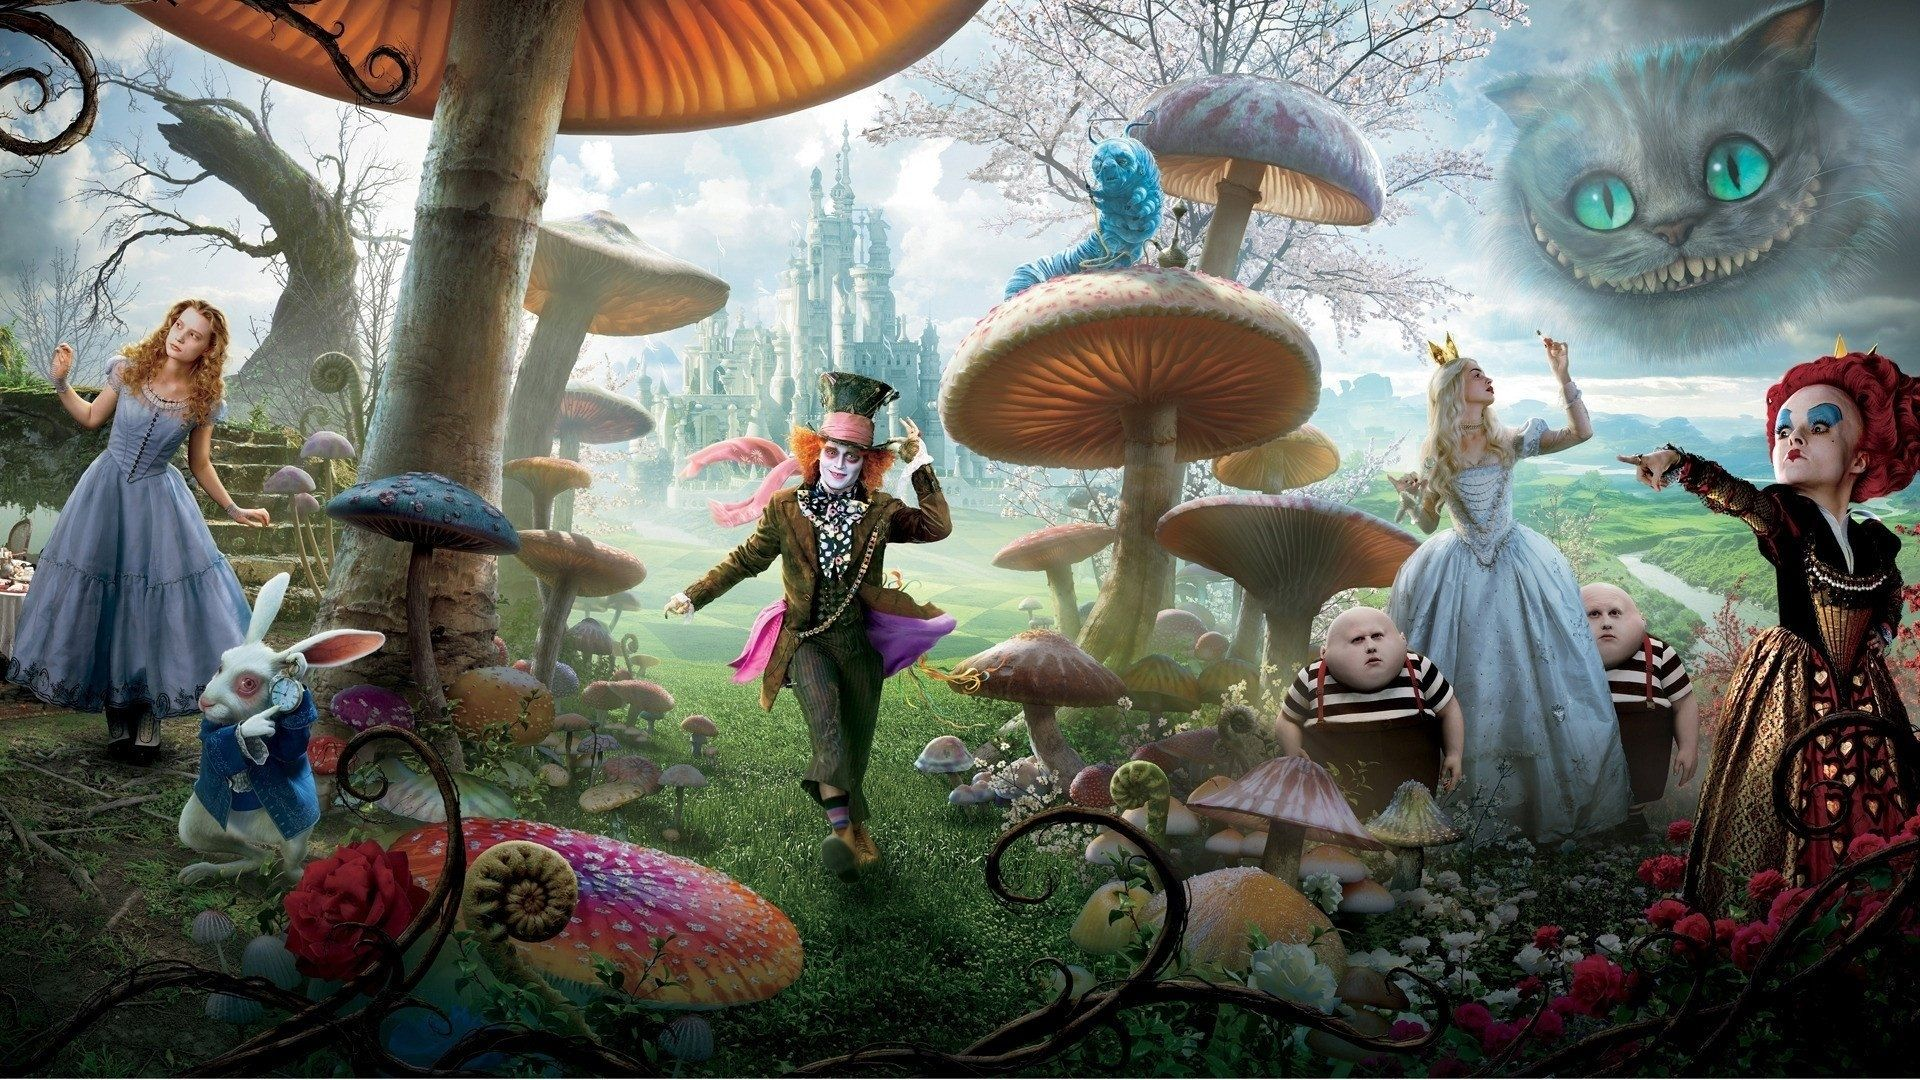 10 Top Alice In Wonderland Wallpaper FULL HD 1920×1080 For